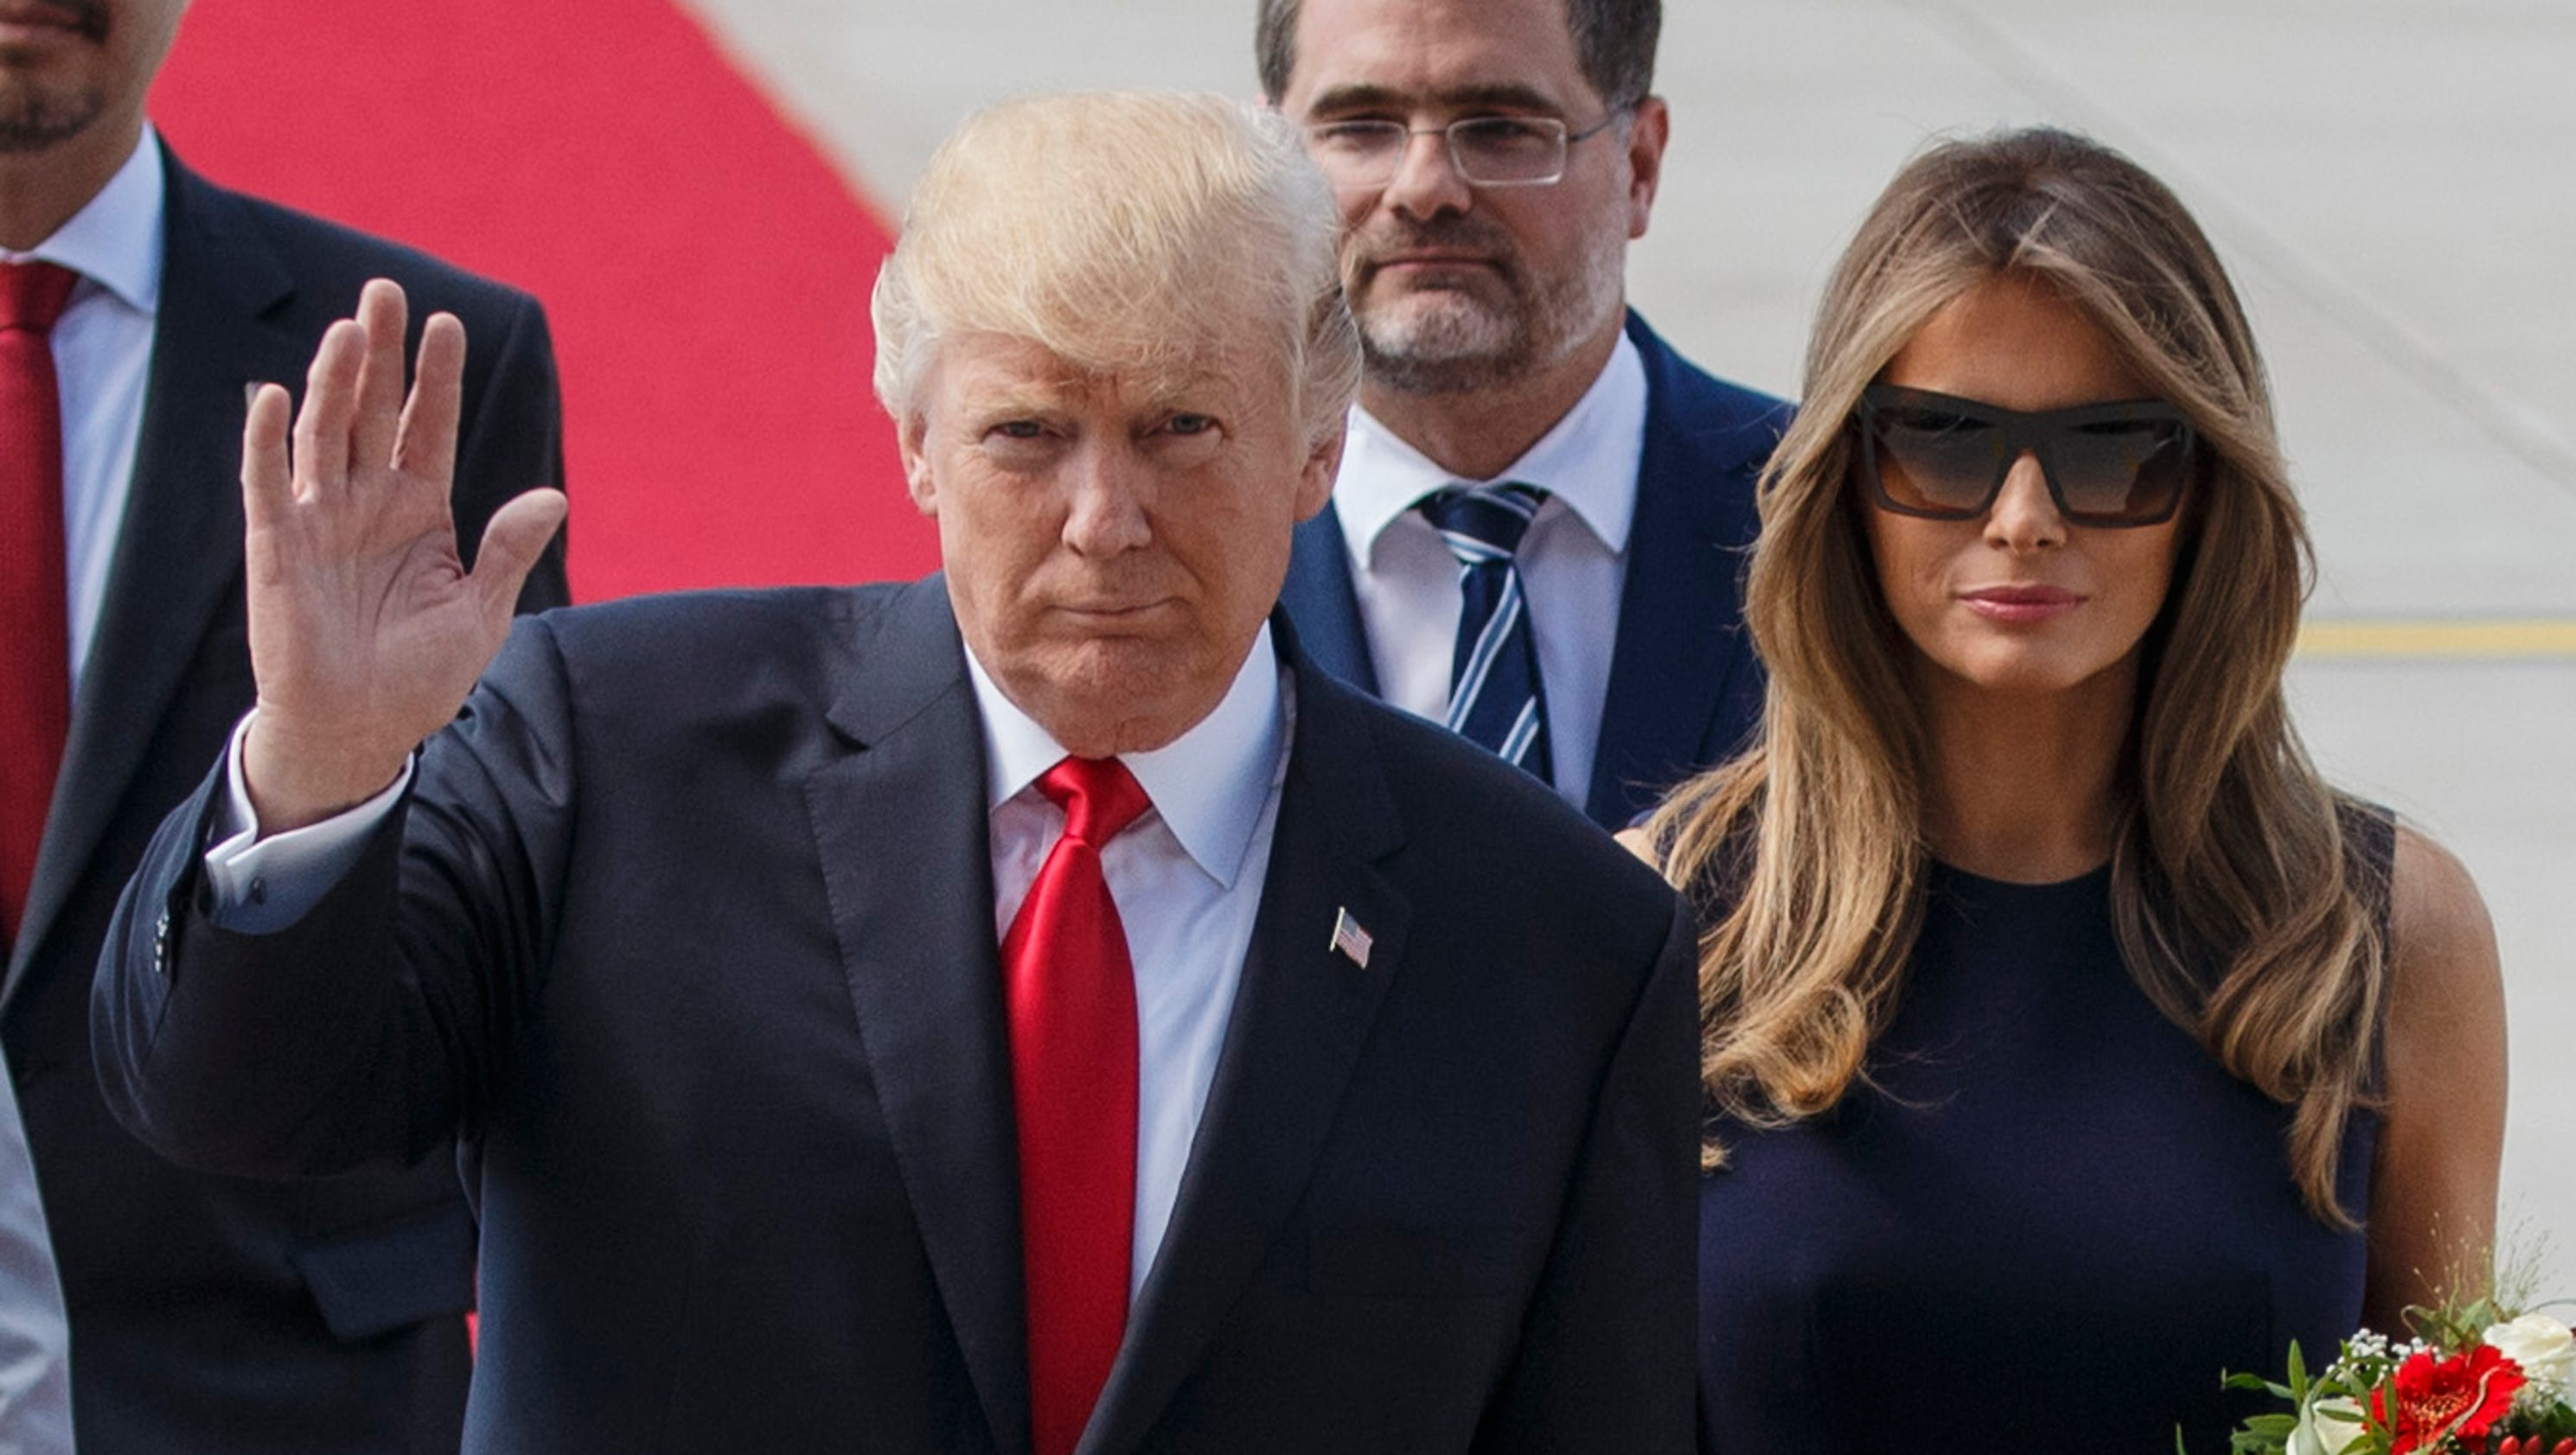 Melania Trump forced to skip G-20 event due to protests